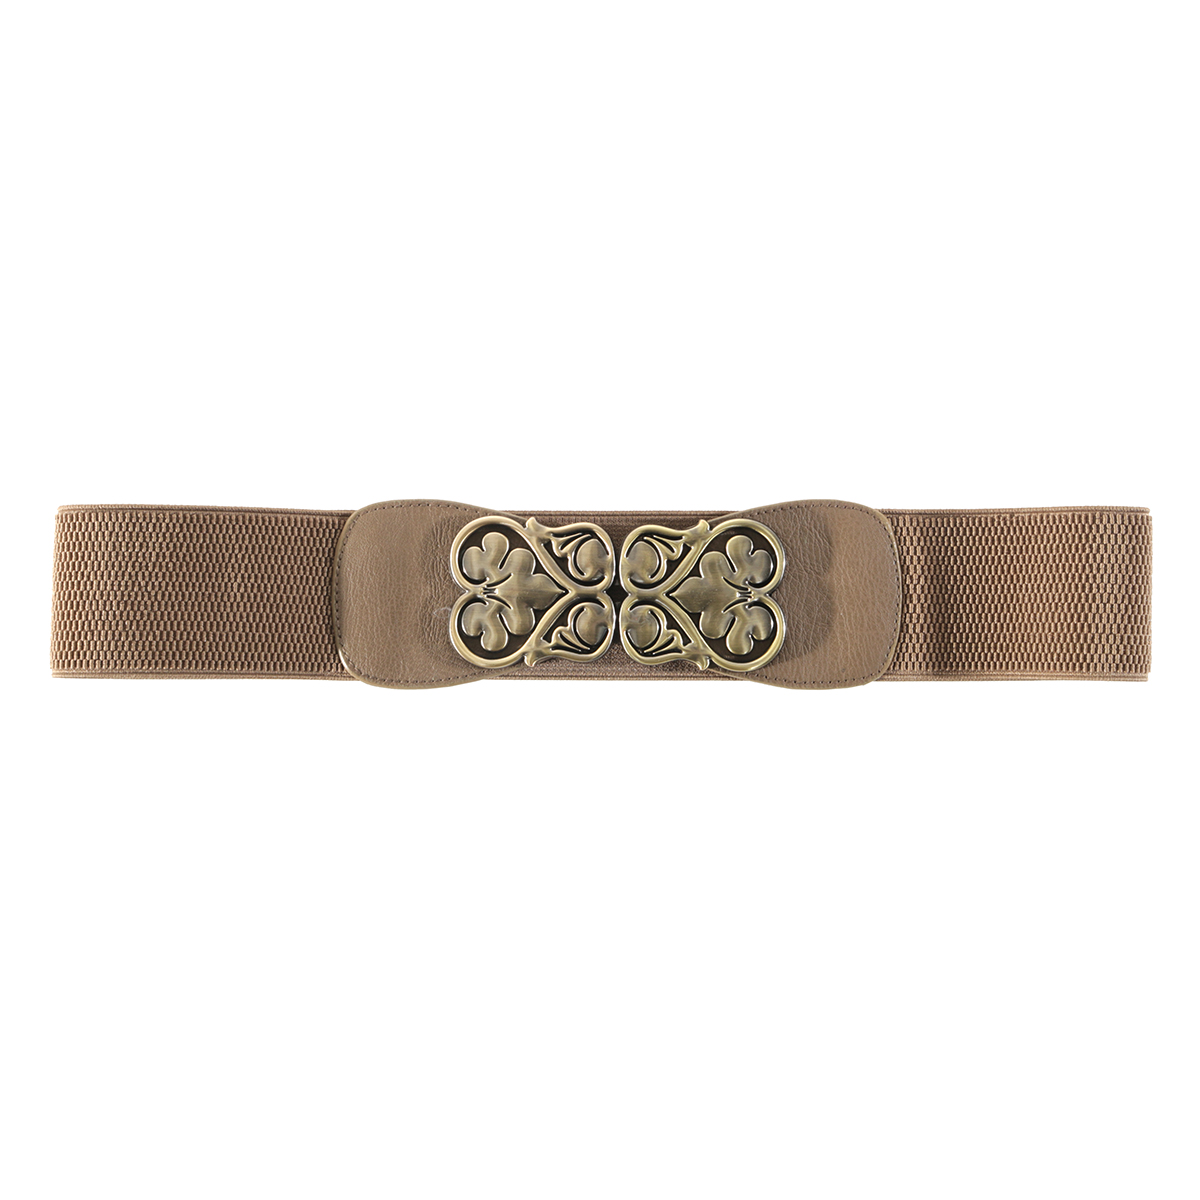 "BROWN 31"" HEART BUCKLE BELT"